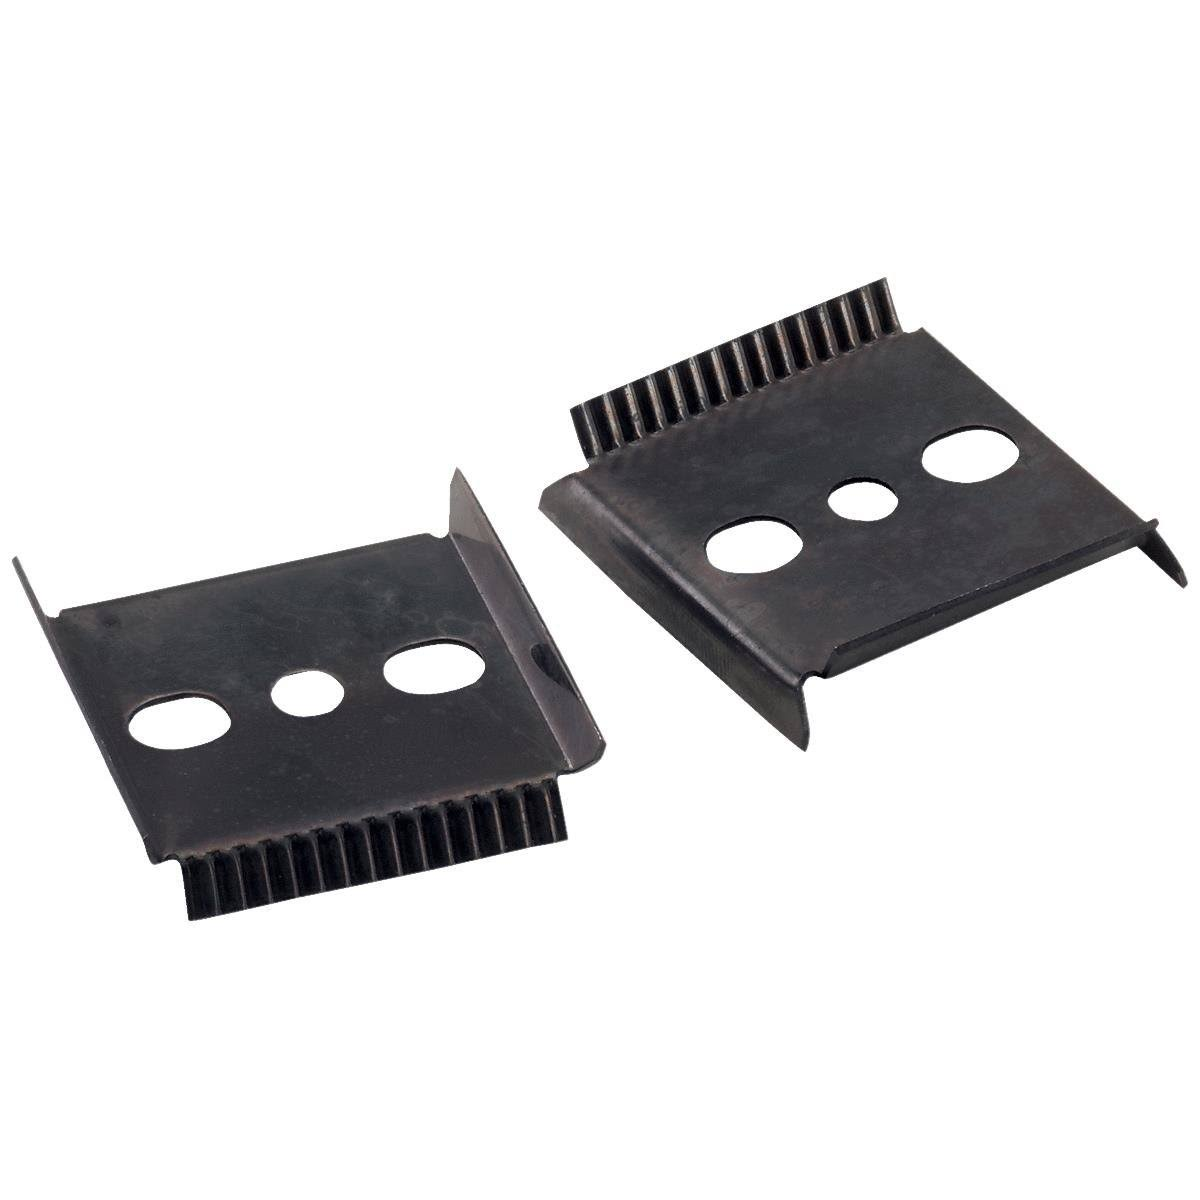 "Do It Best Paint Scraper Replacement Blade - 1 3/4"", 2pk"